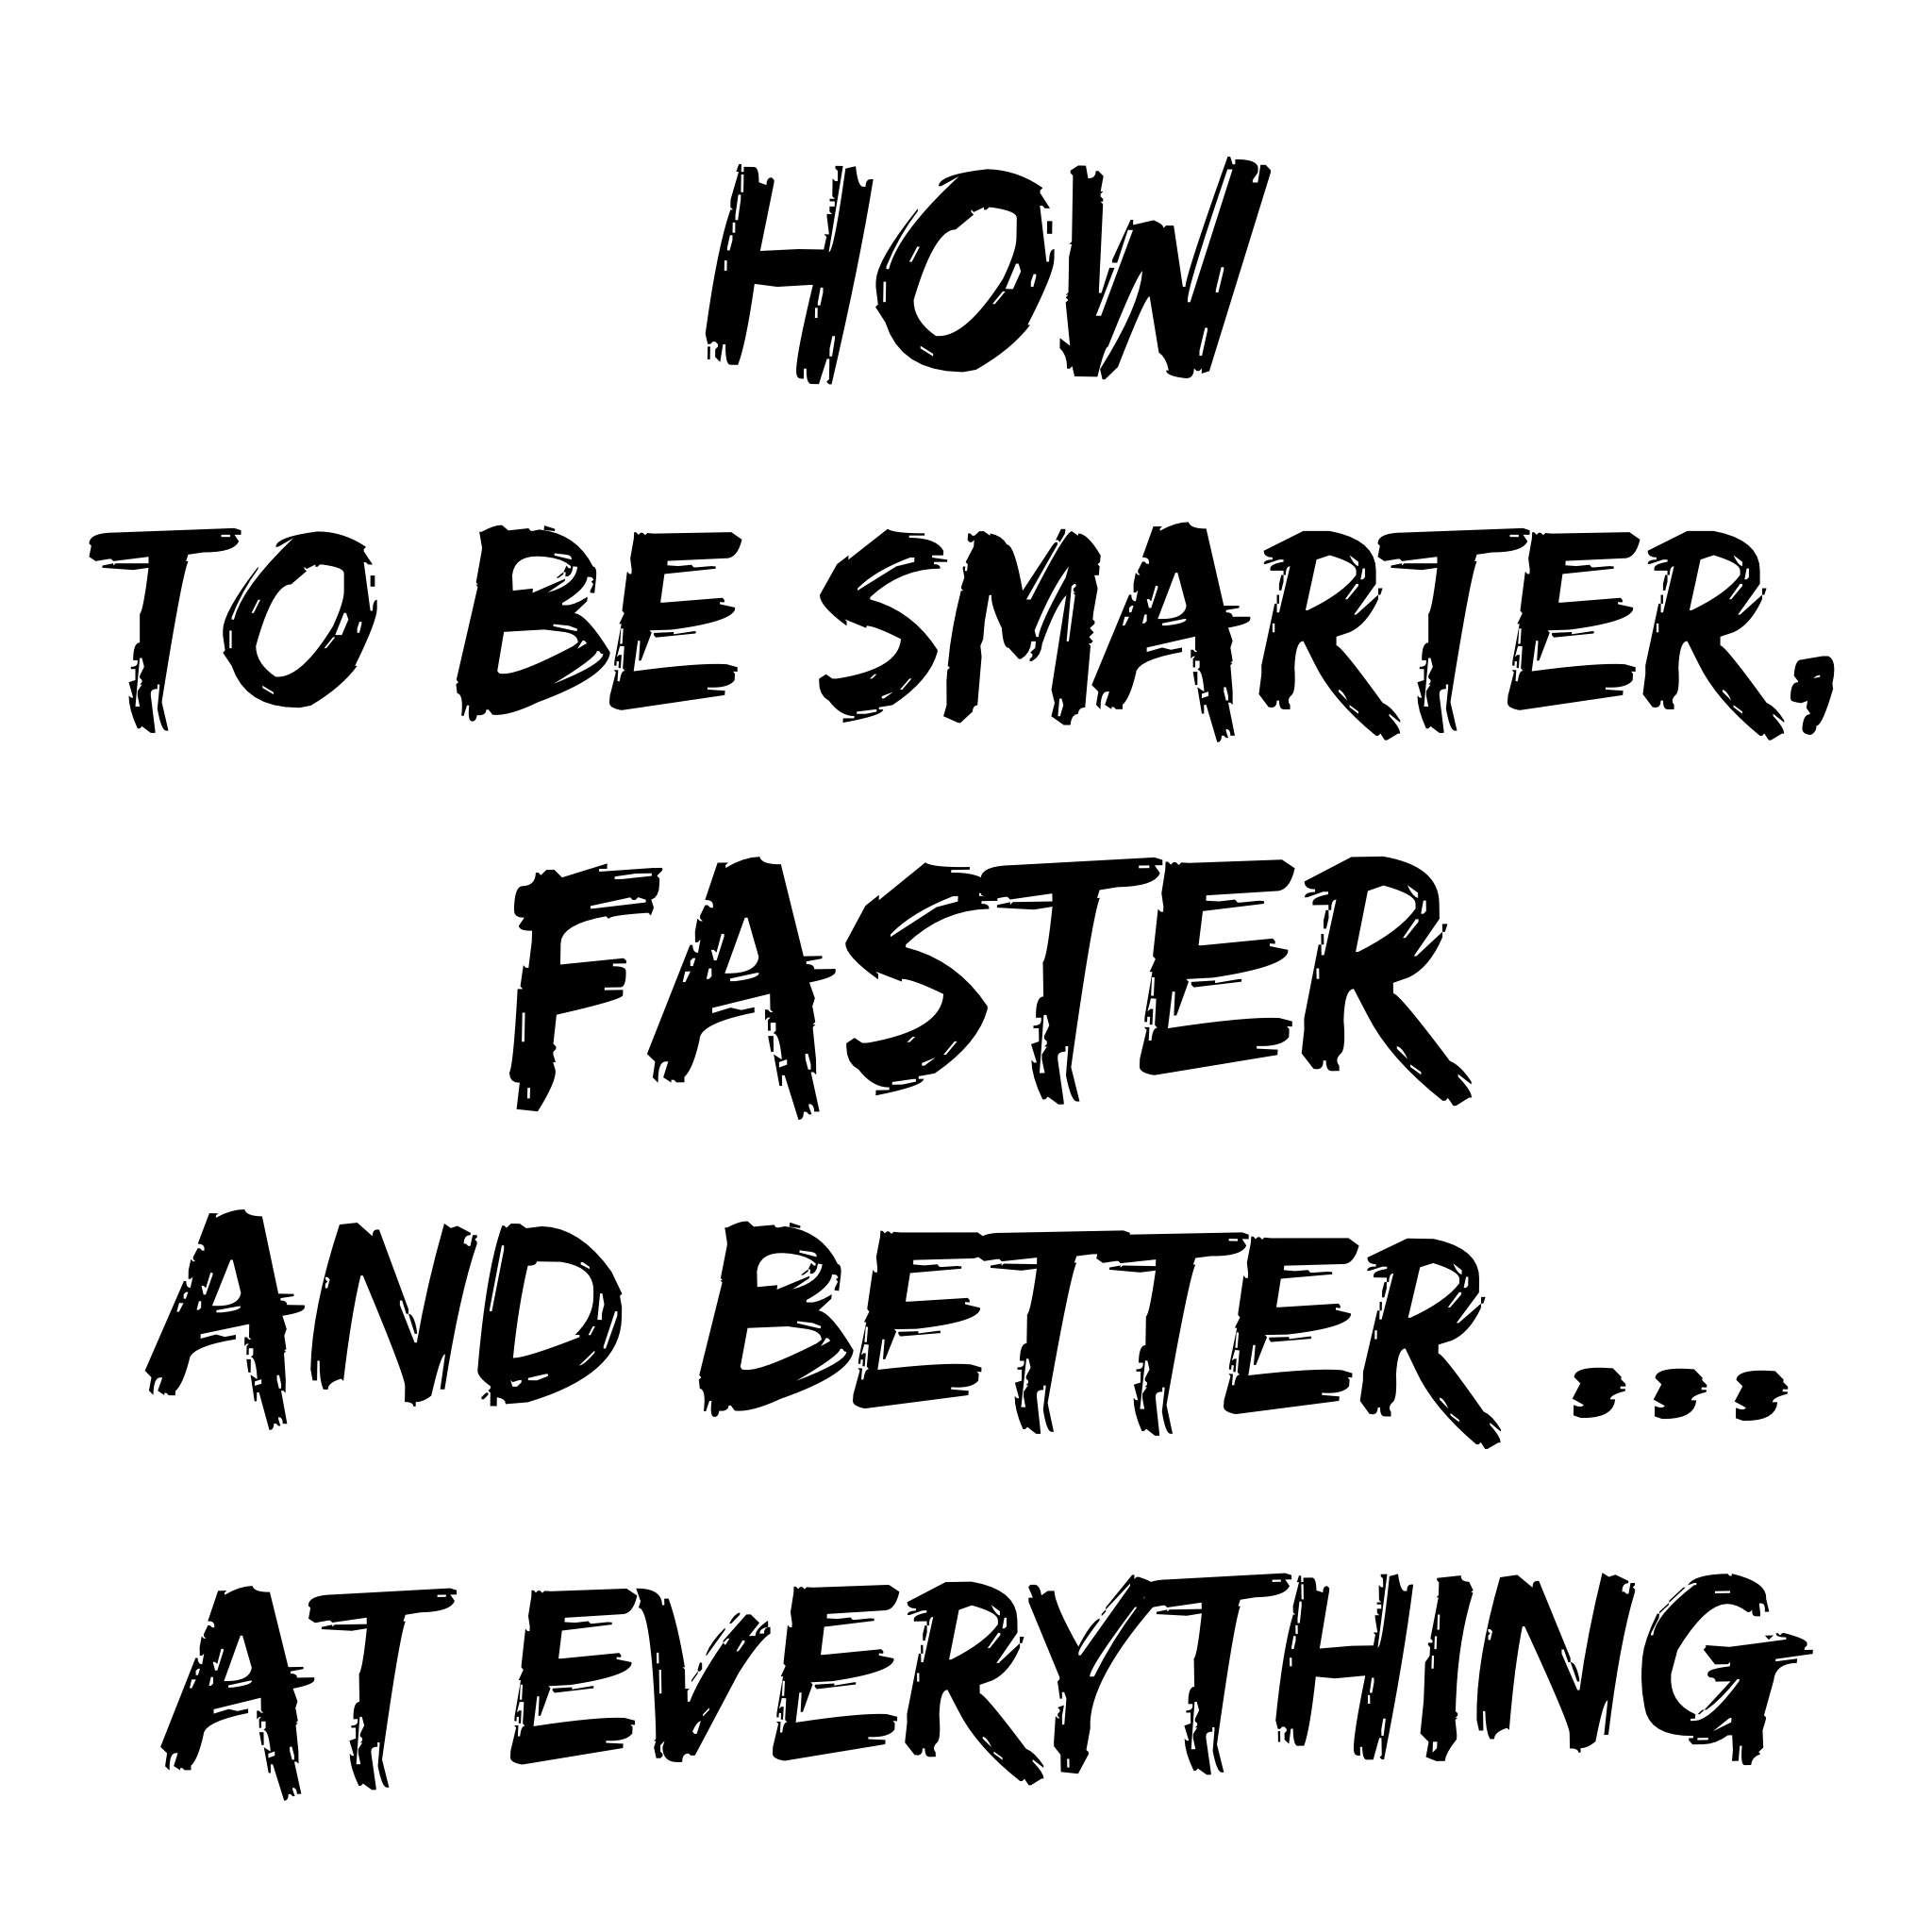 Stretch Goals + SMART Goals = SUCCESS (Smarter Faster